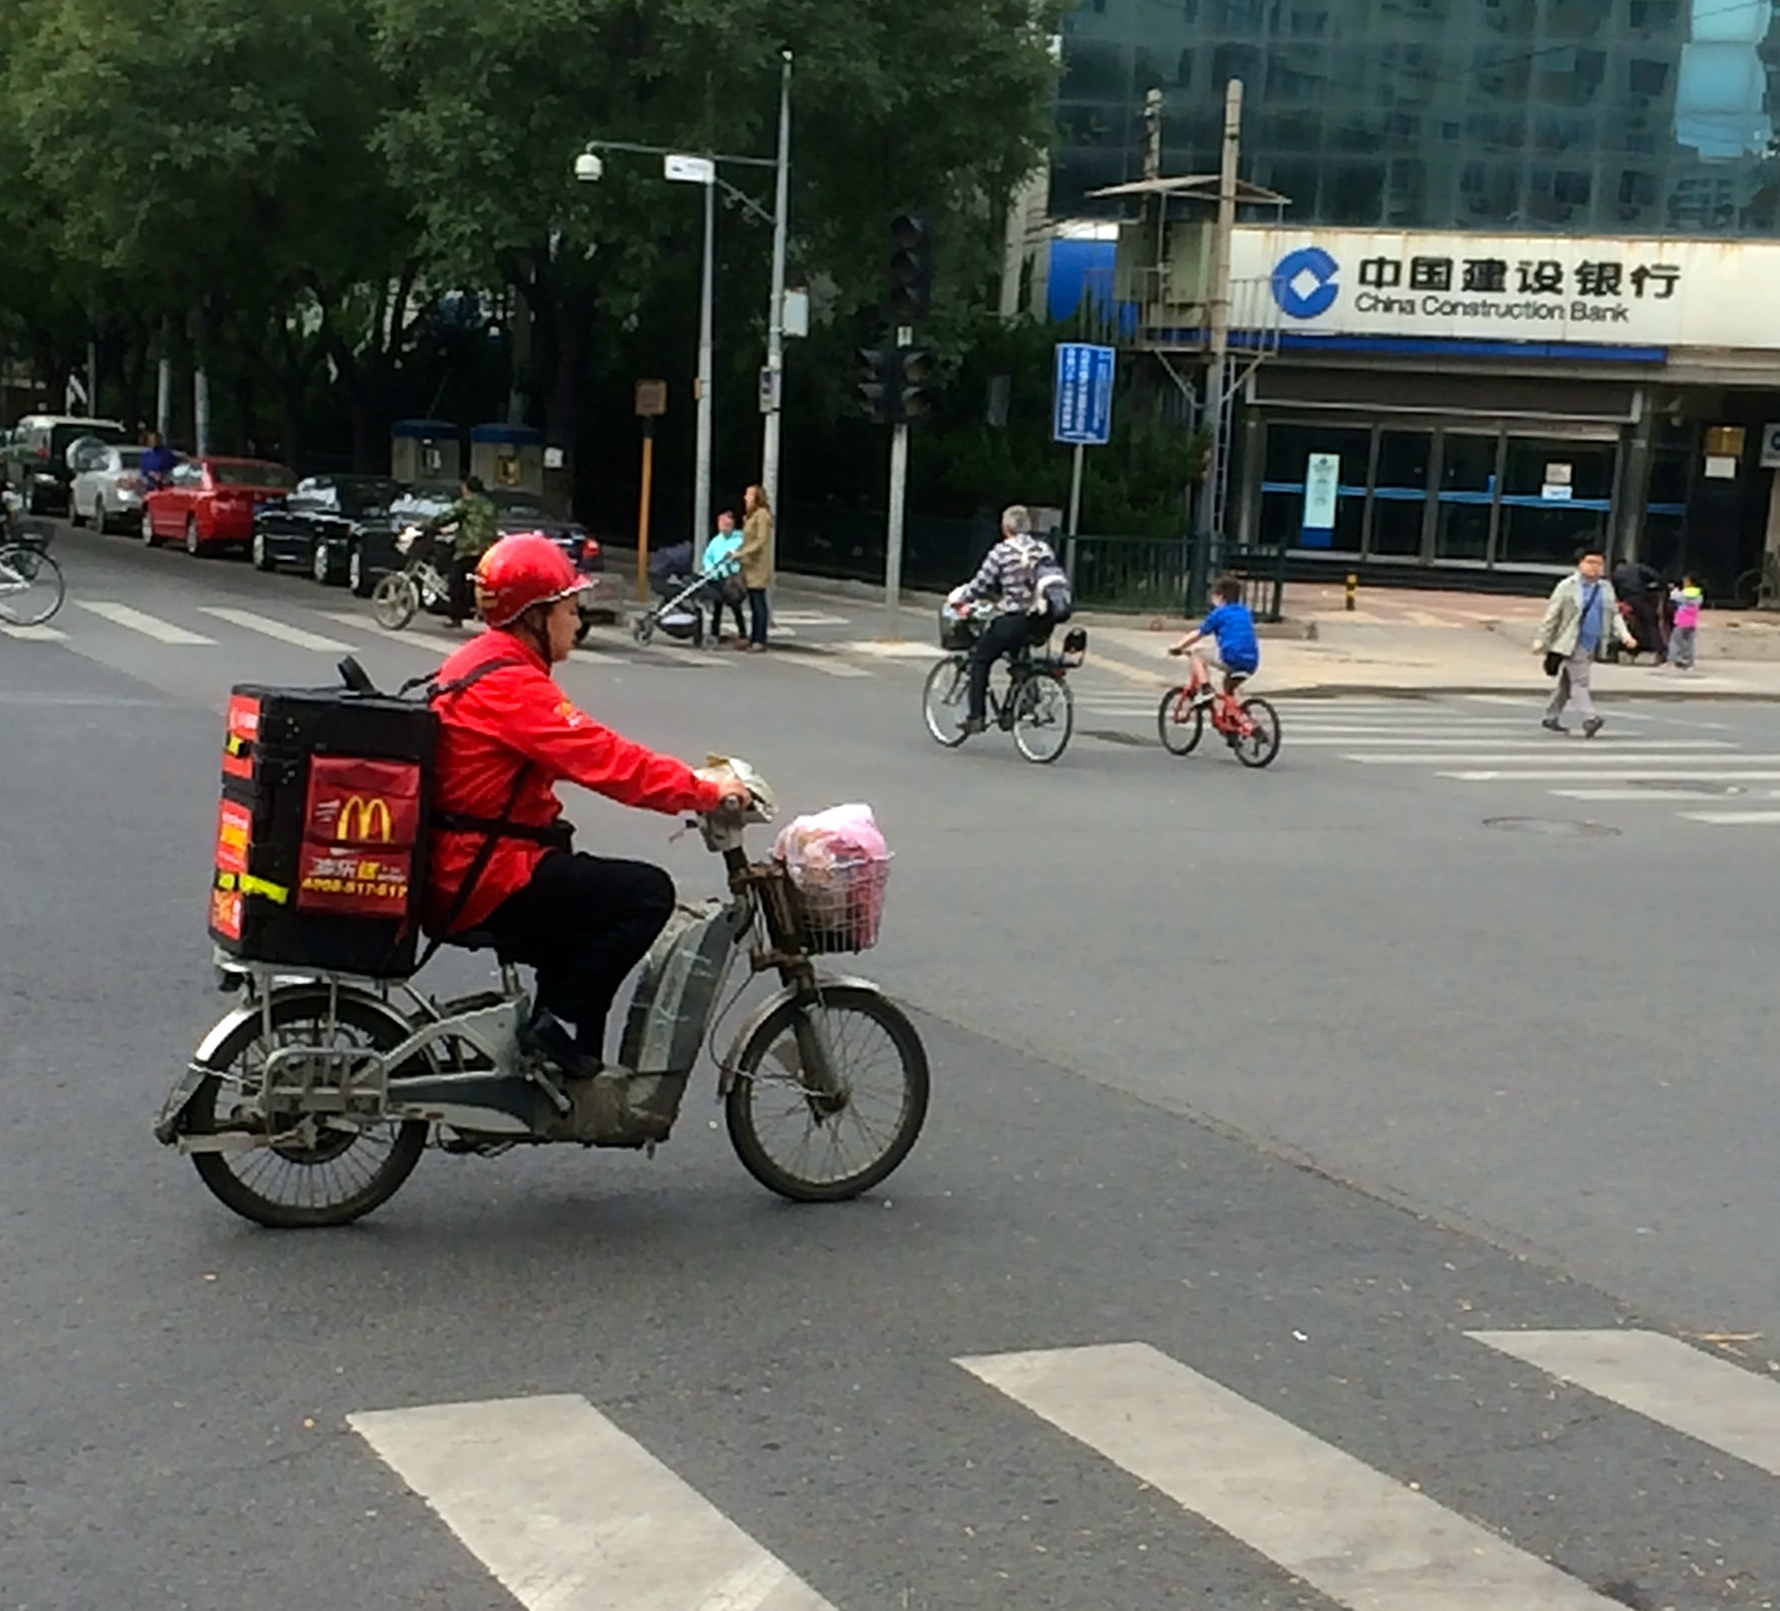 yes, that's a McDonald's delivery driver.